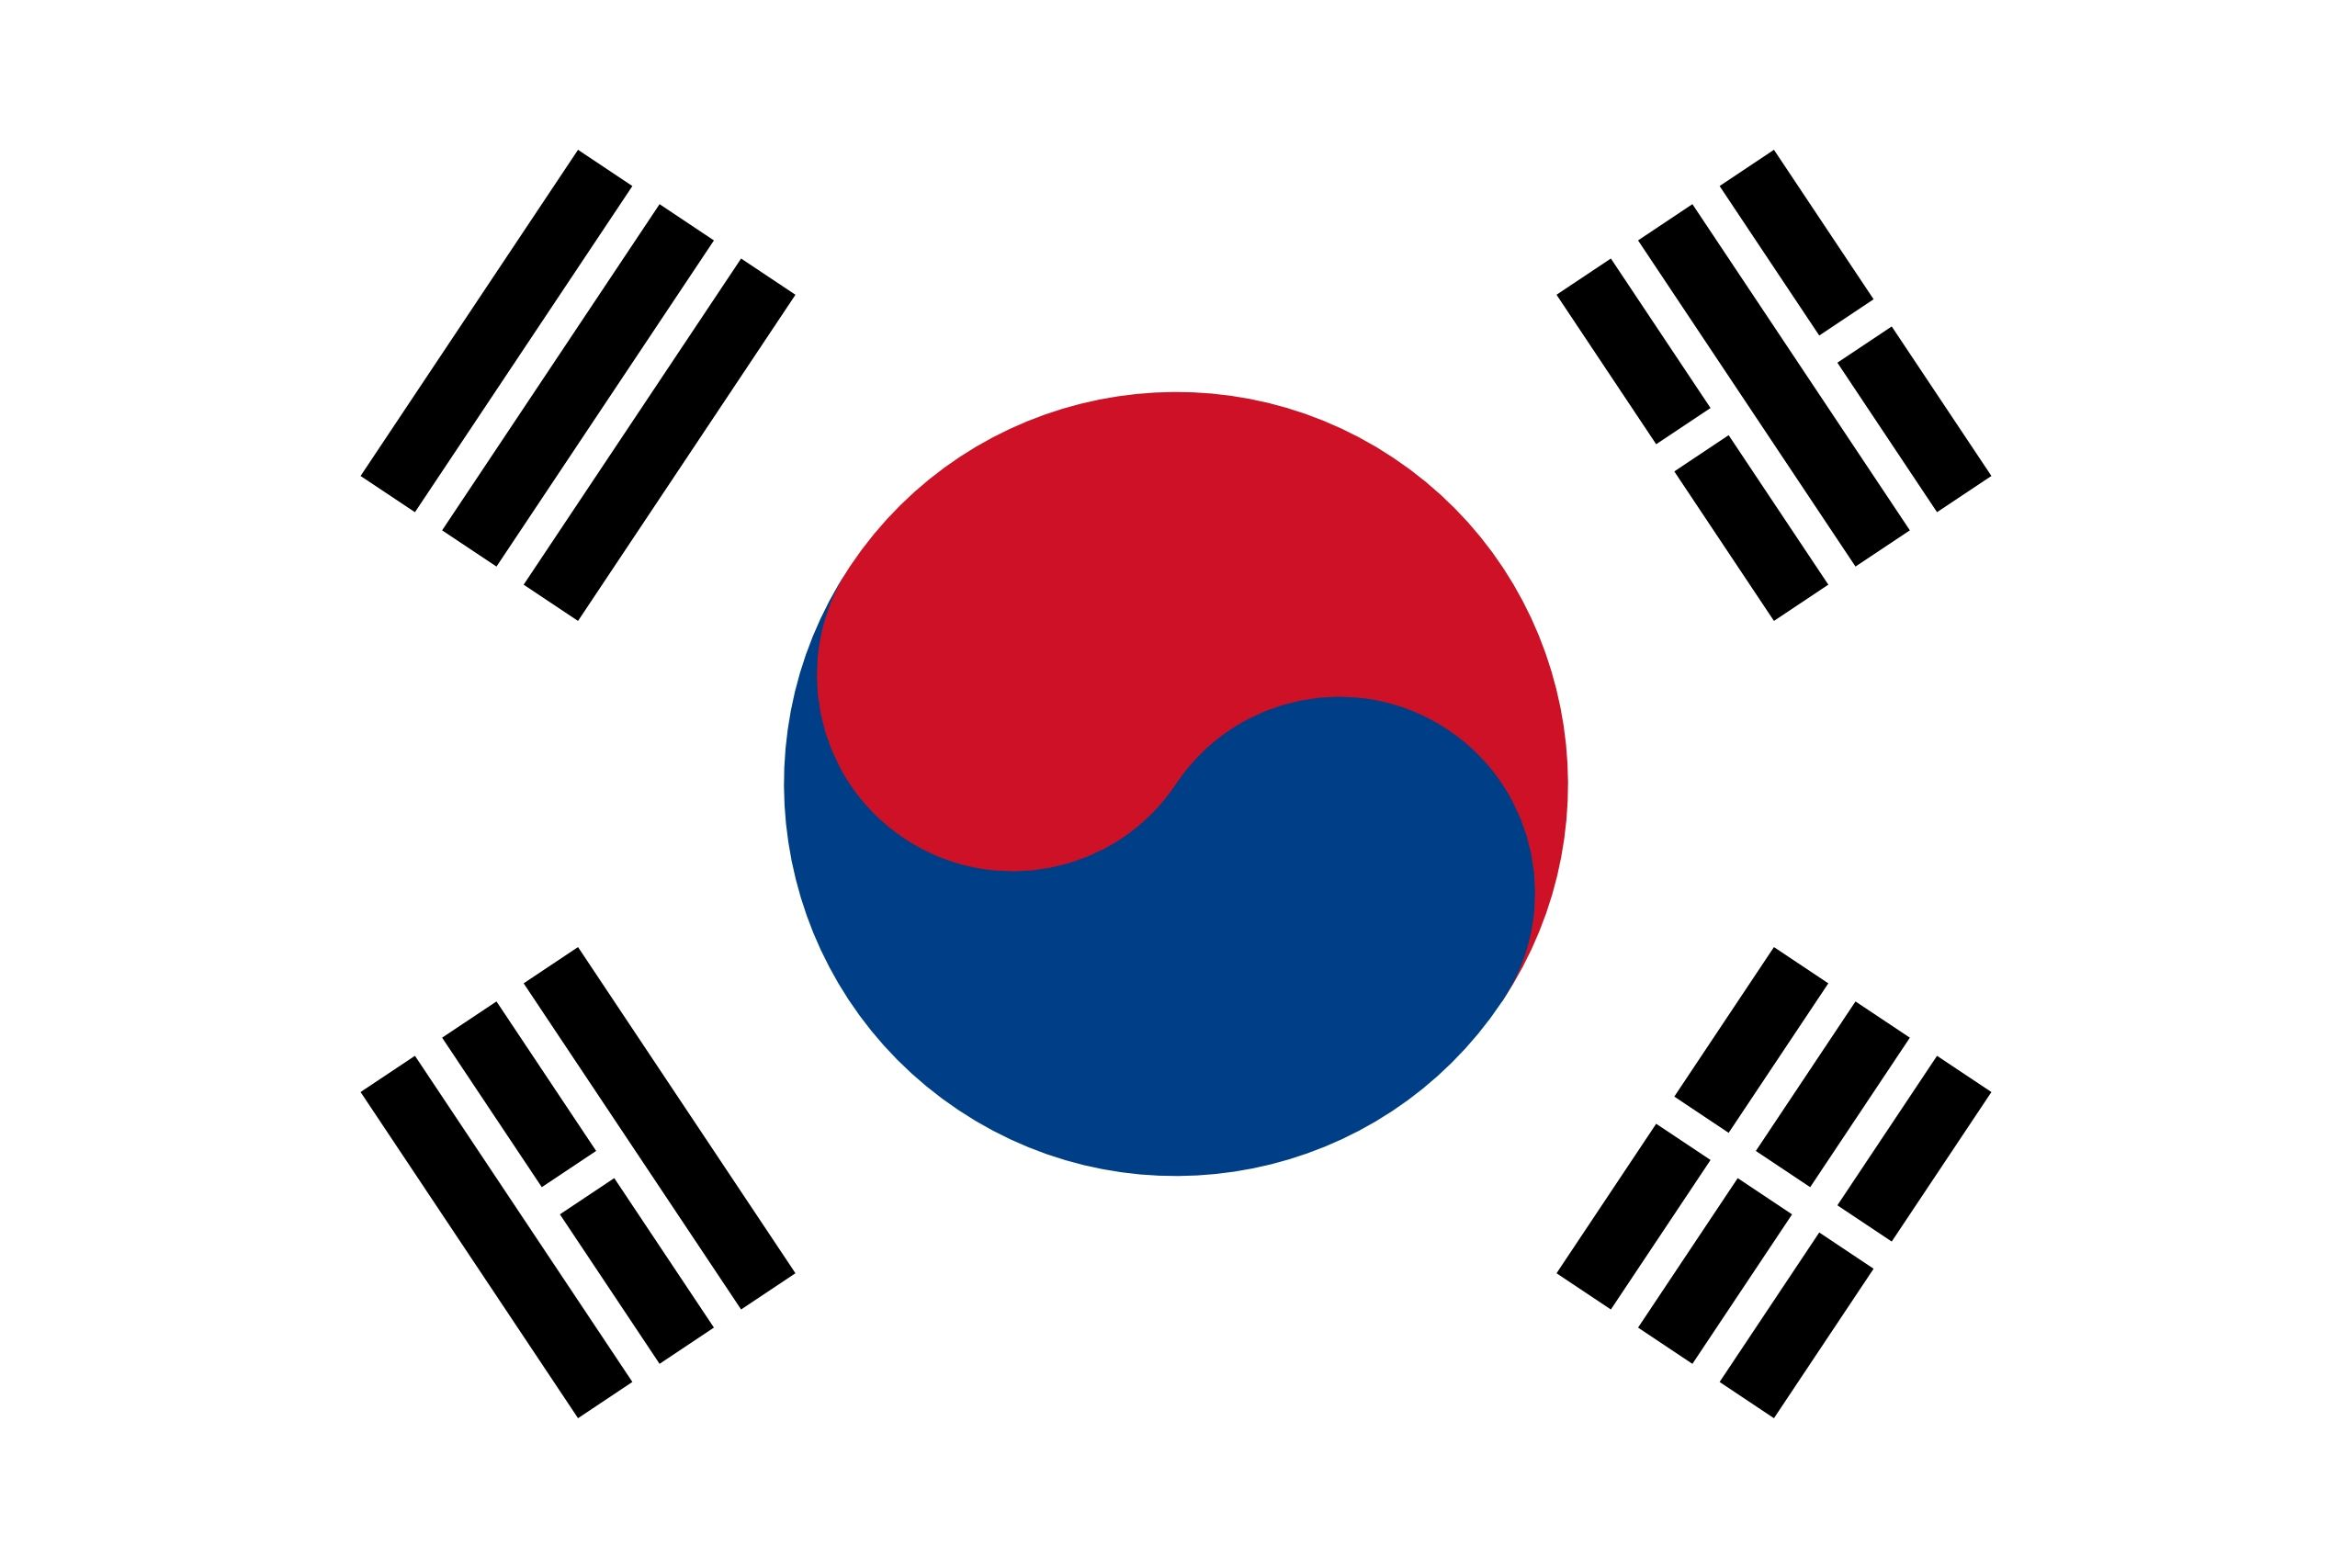 BANDERA DE COREA DEL SUR | Korean flag, South korean flag, South korea flag